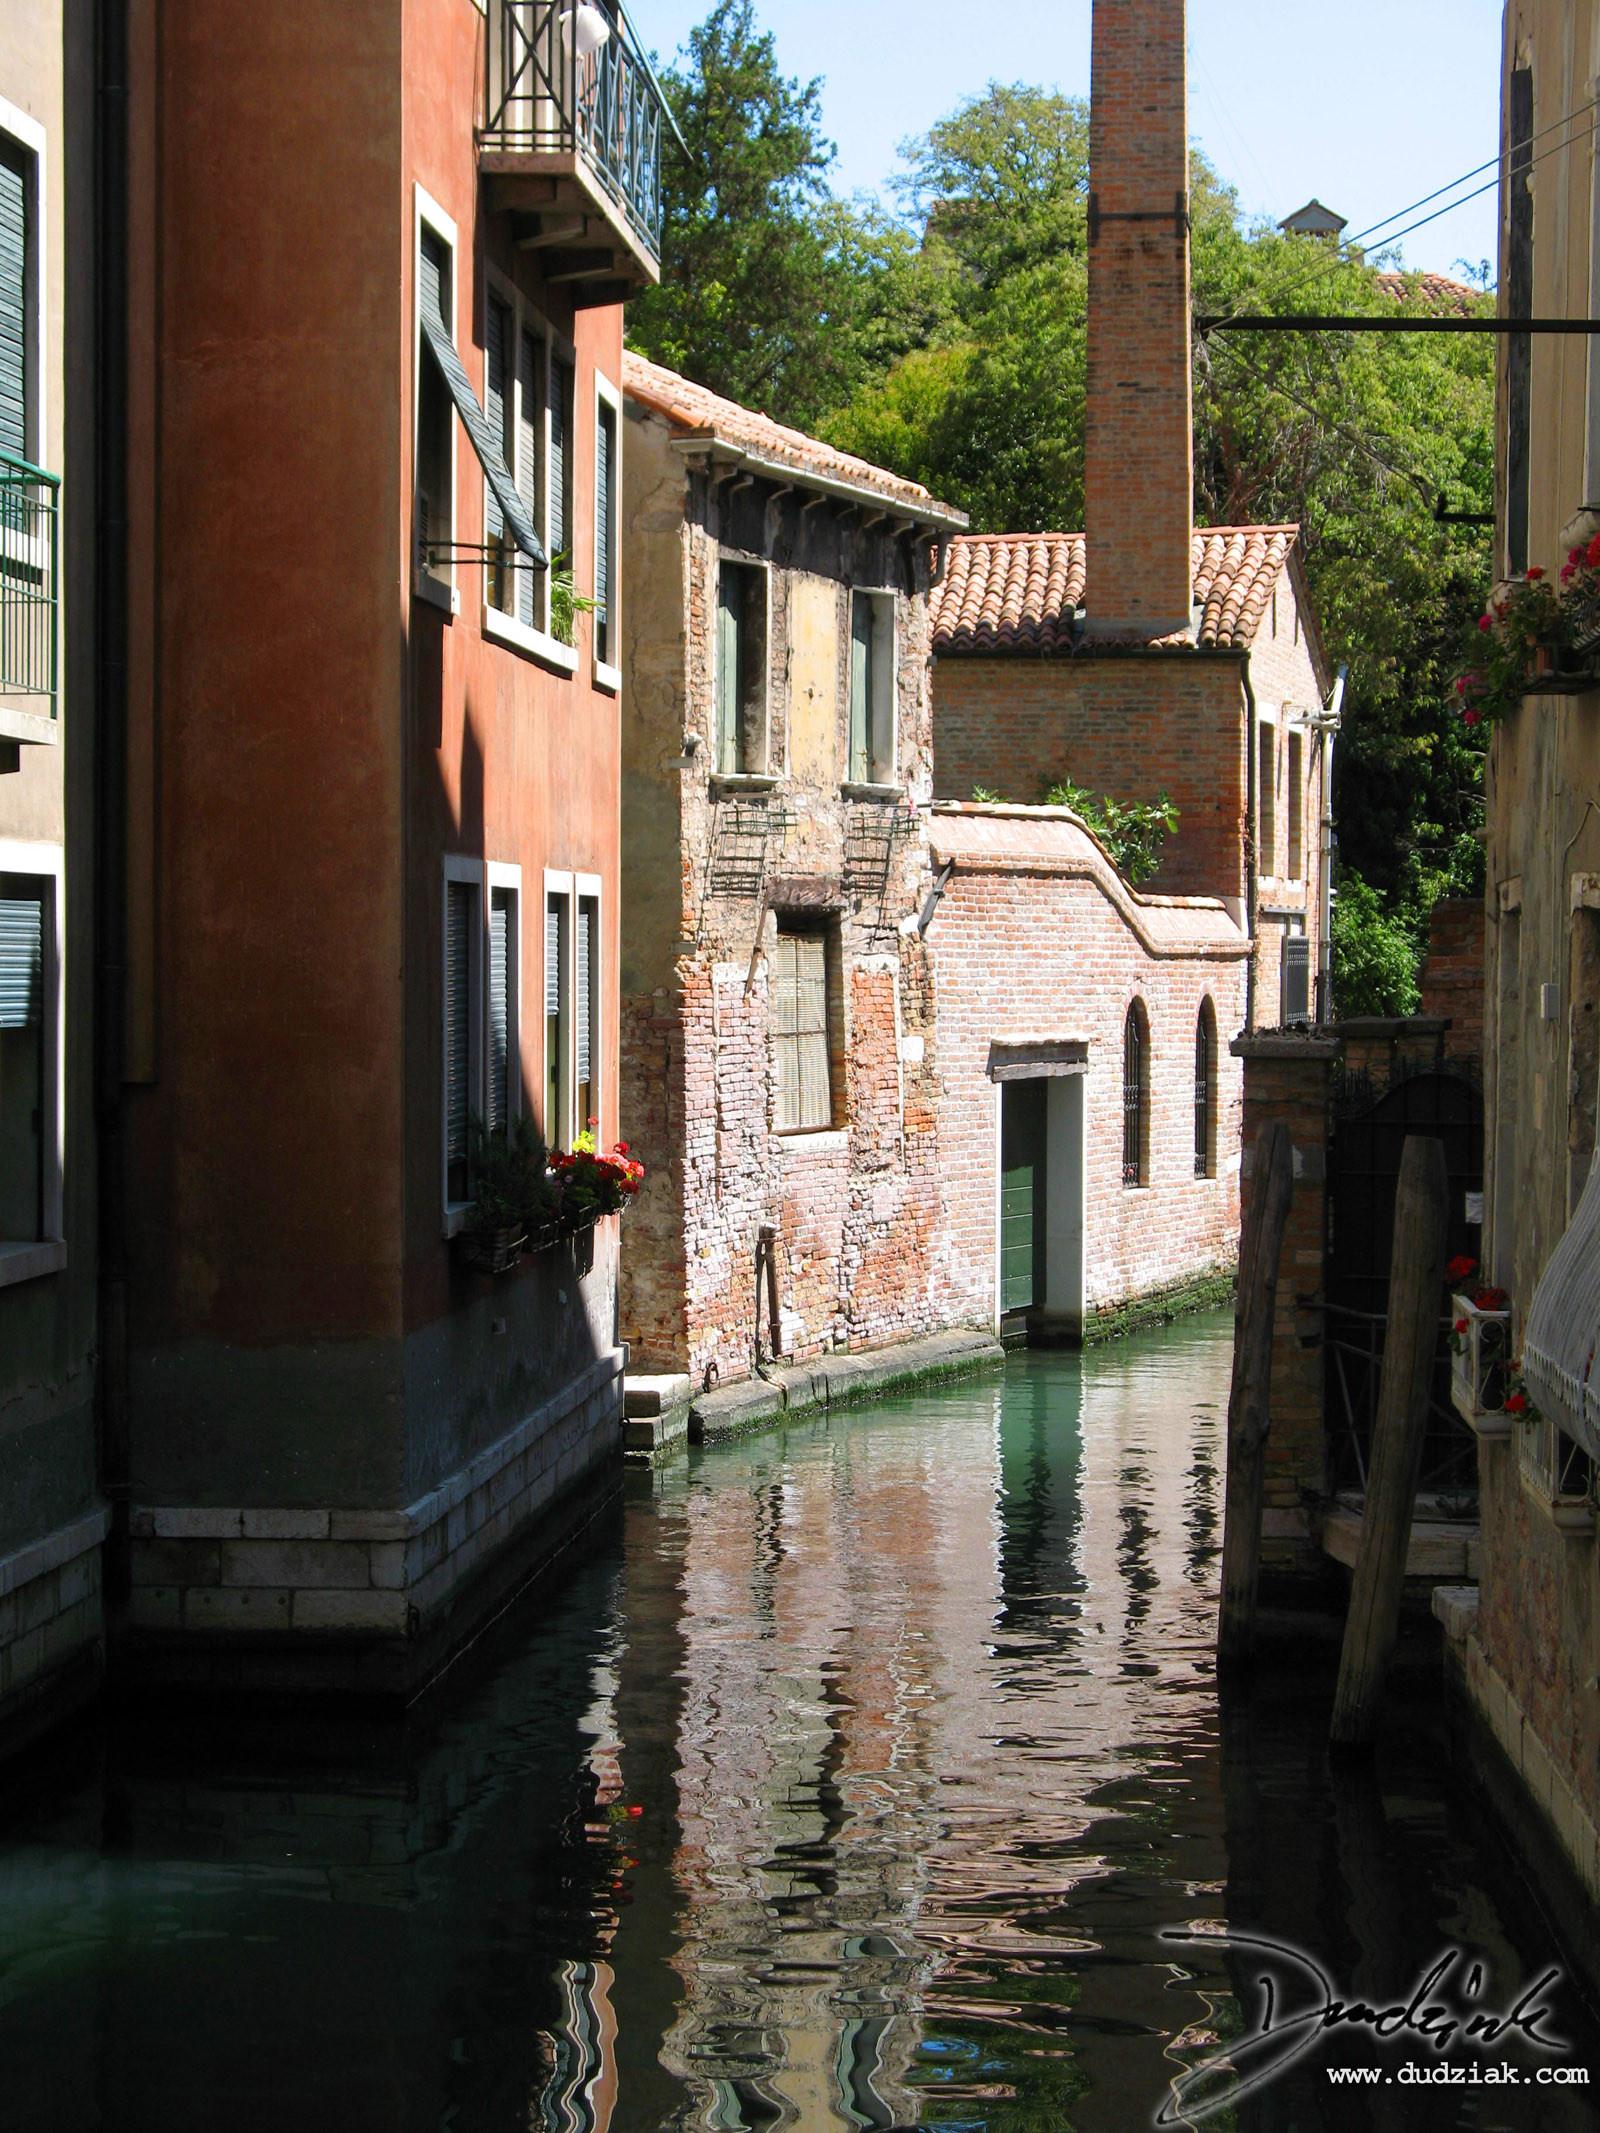 Picture of the Venetian canal Rio della Toletta facing East towards the Grand Canal in Venice, Italy.<br><Br>[Lat, Long]:[45.43216358805299, 12.325952053070068]